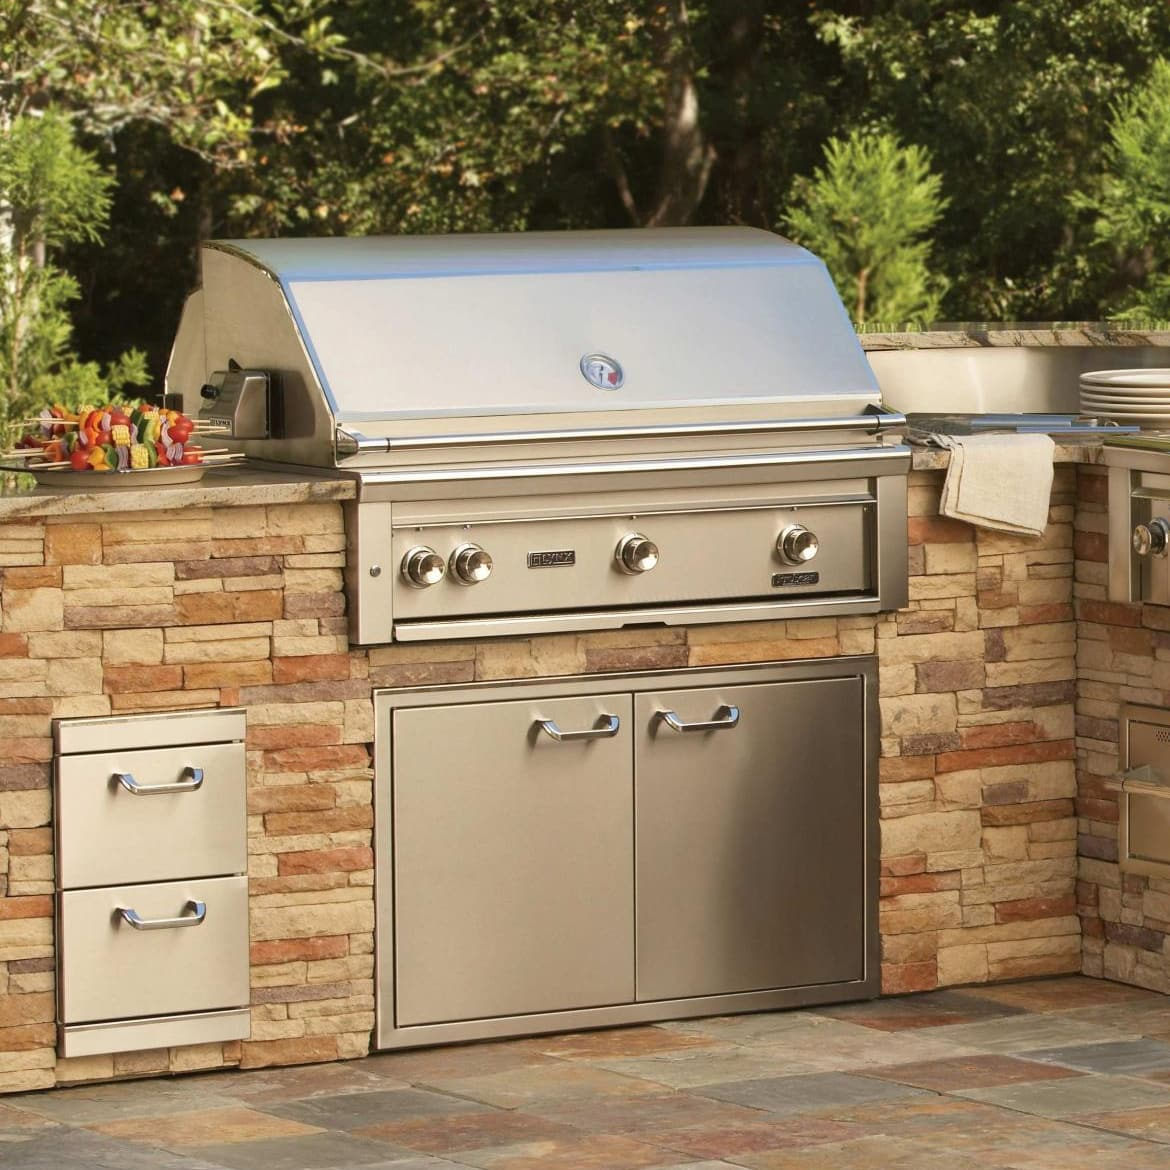 Kitchen appliances kegerators and wine coolers for Outdoor barbecues built in